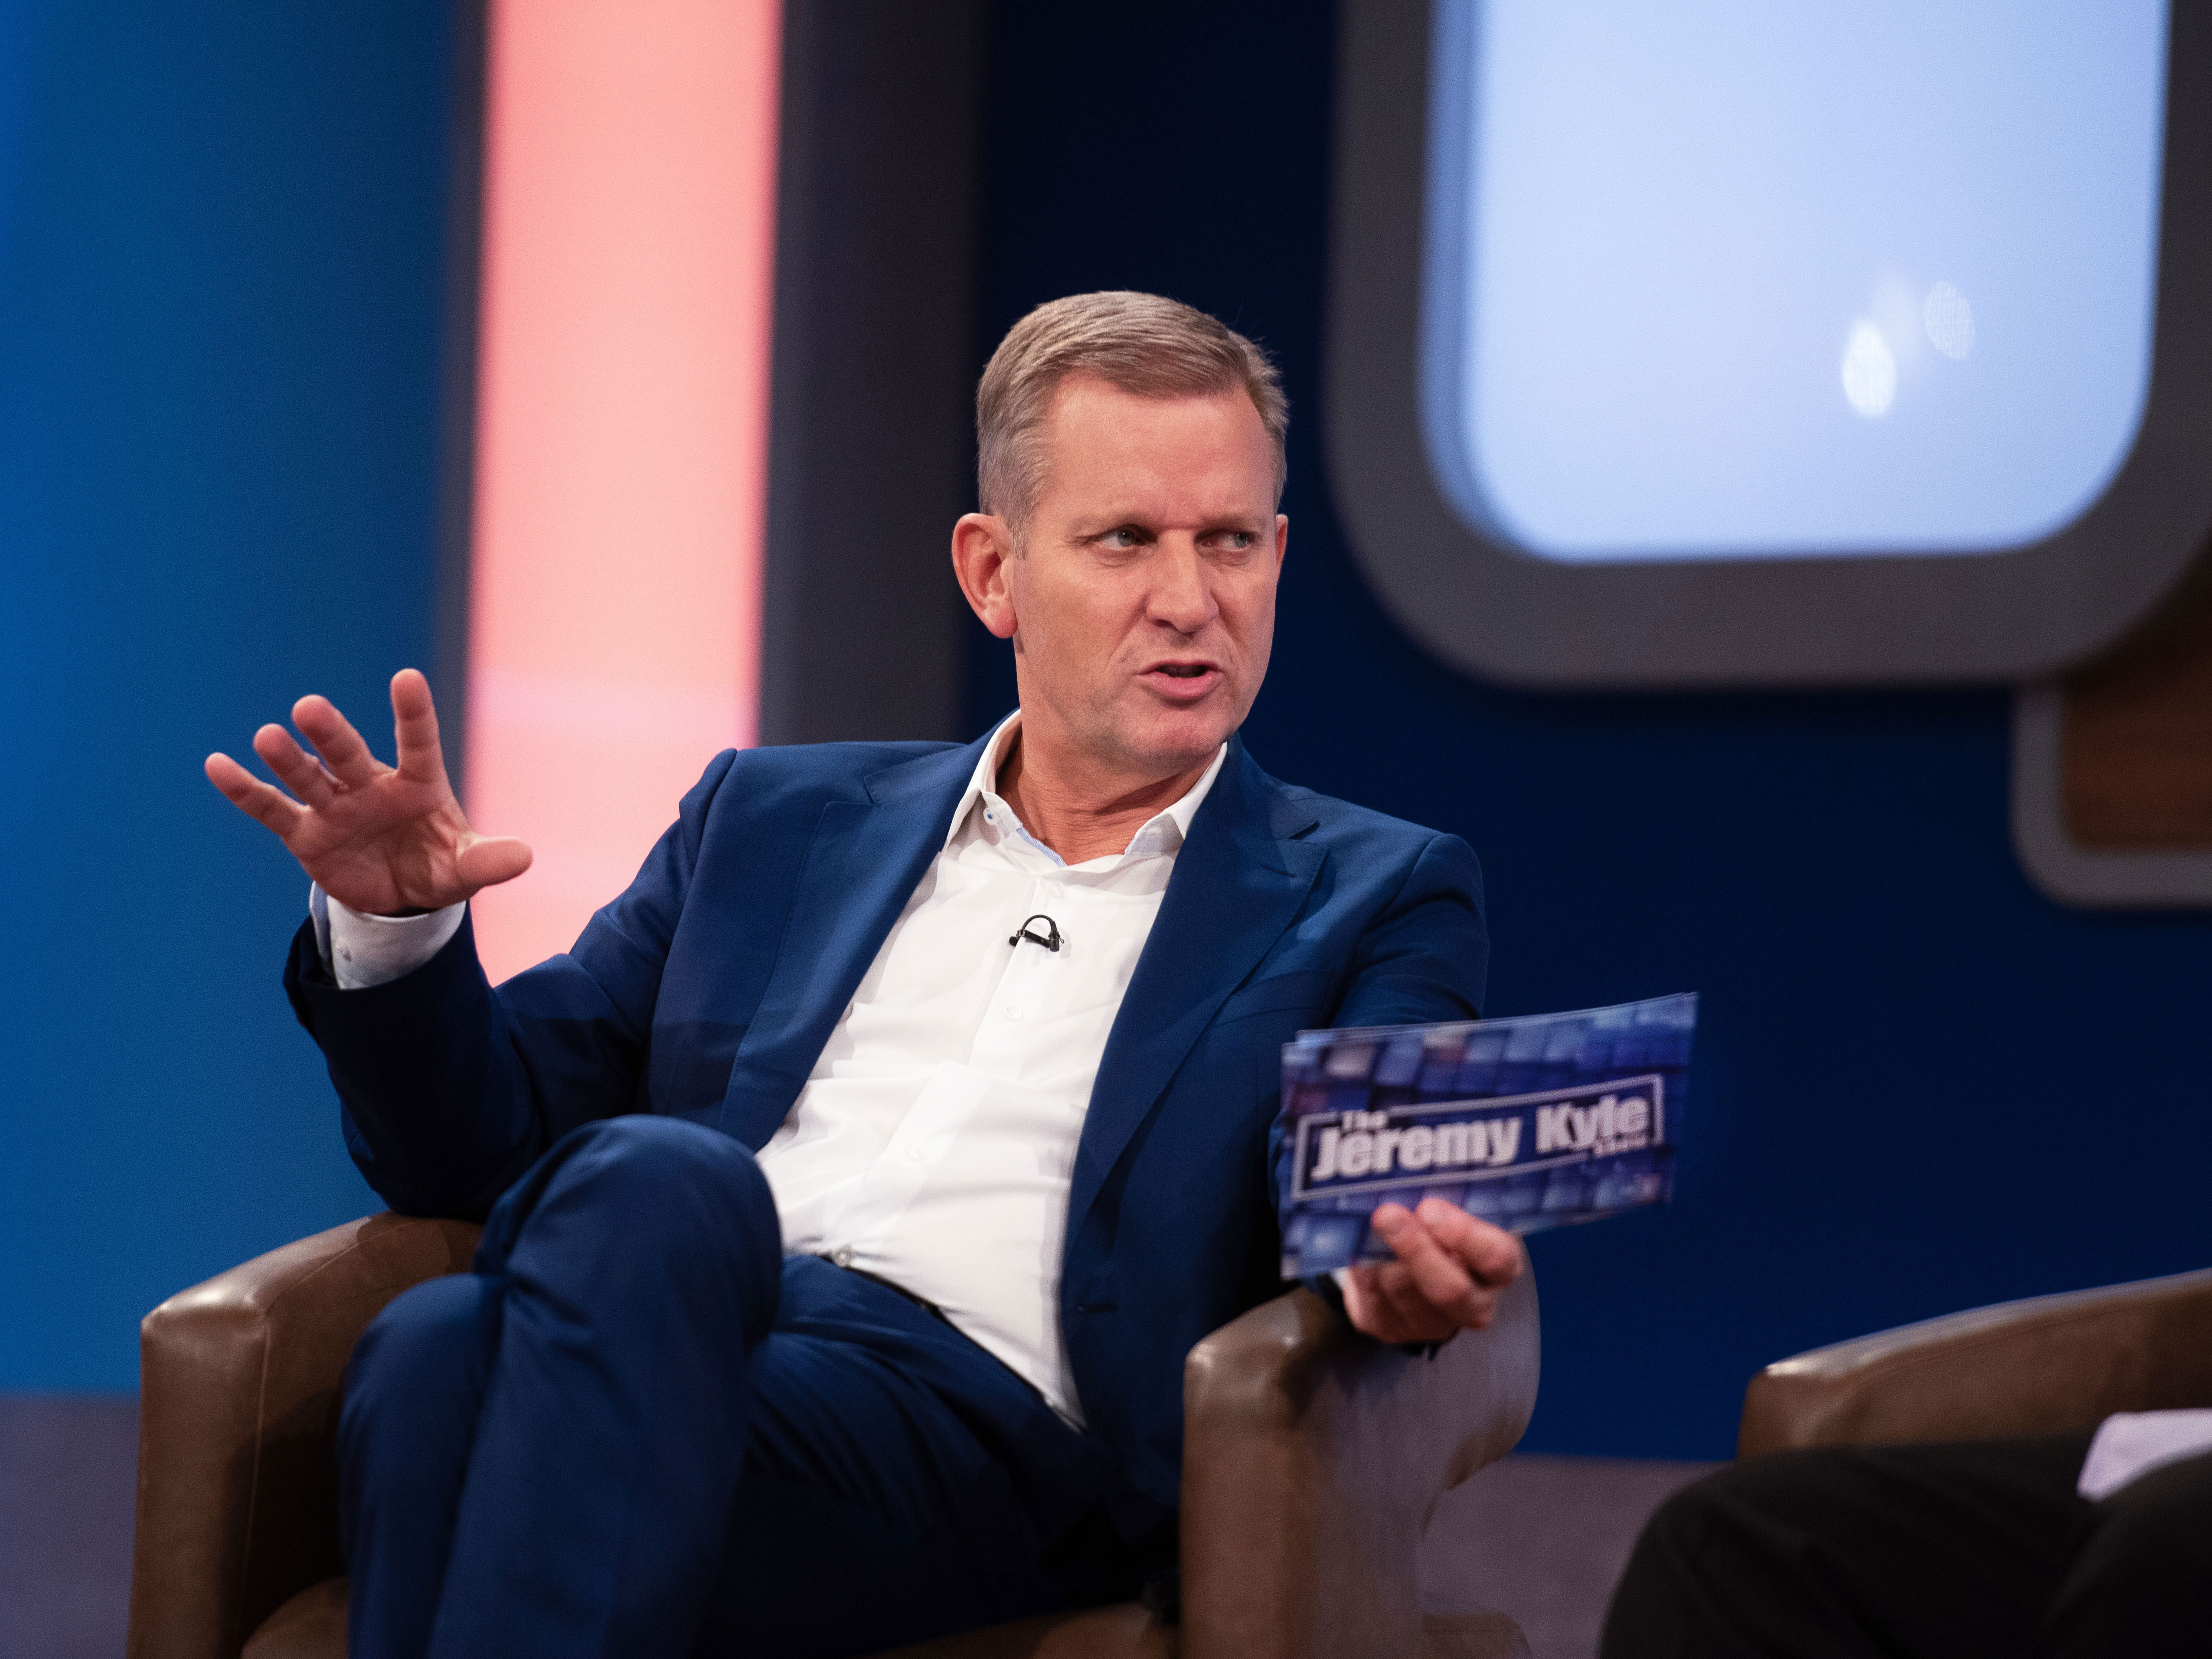 Jeremy Kyle to return to screens in TV comeback following guest's suicide